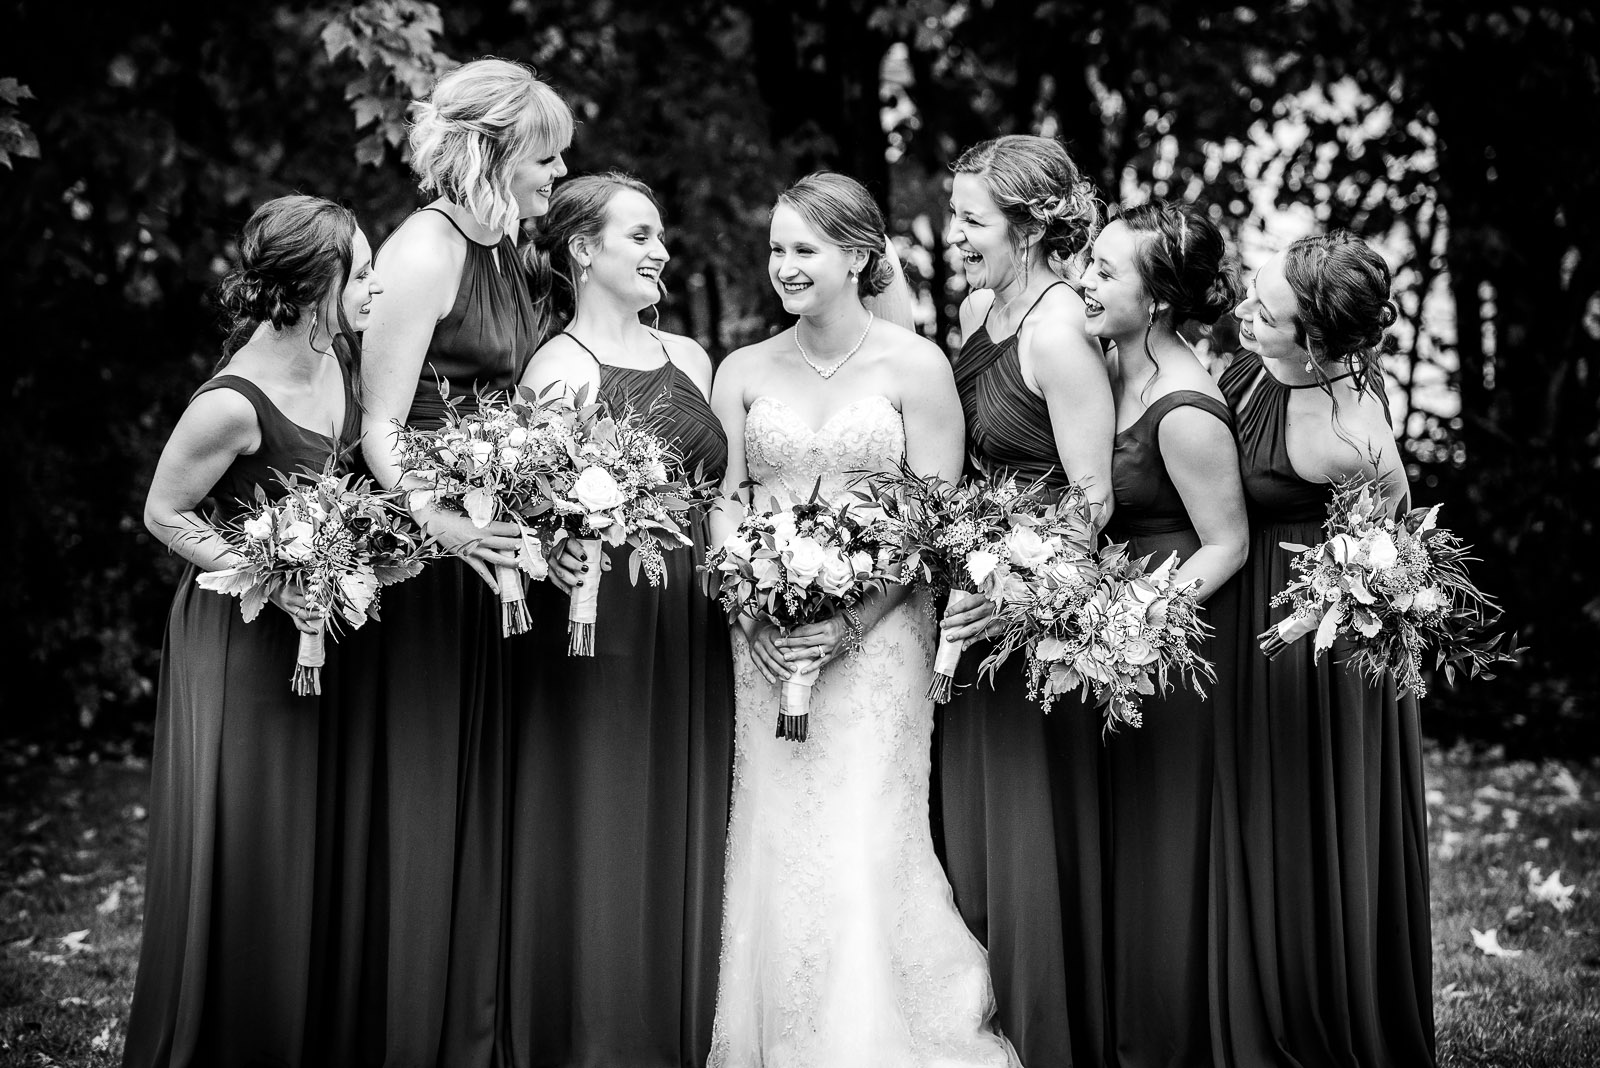 Eric_and_Christy_Photography_Blog_Wedding_Erica_Mike-25